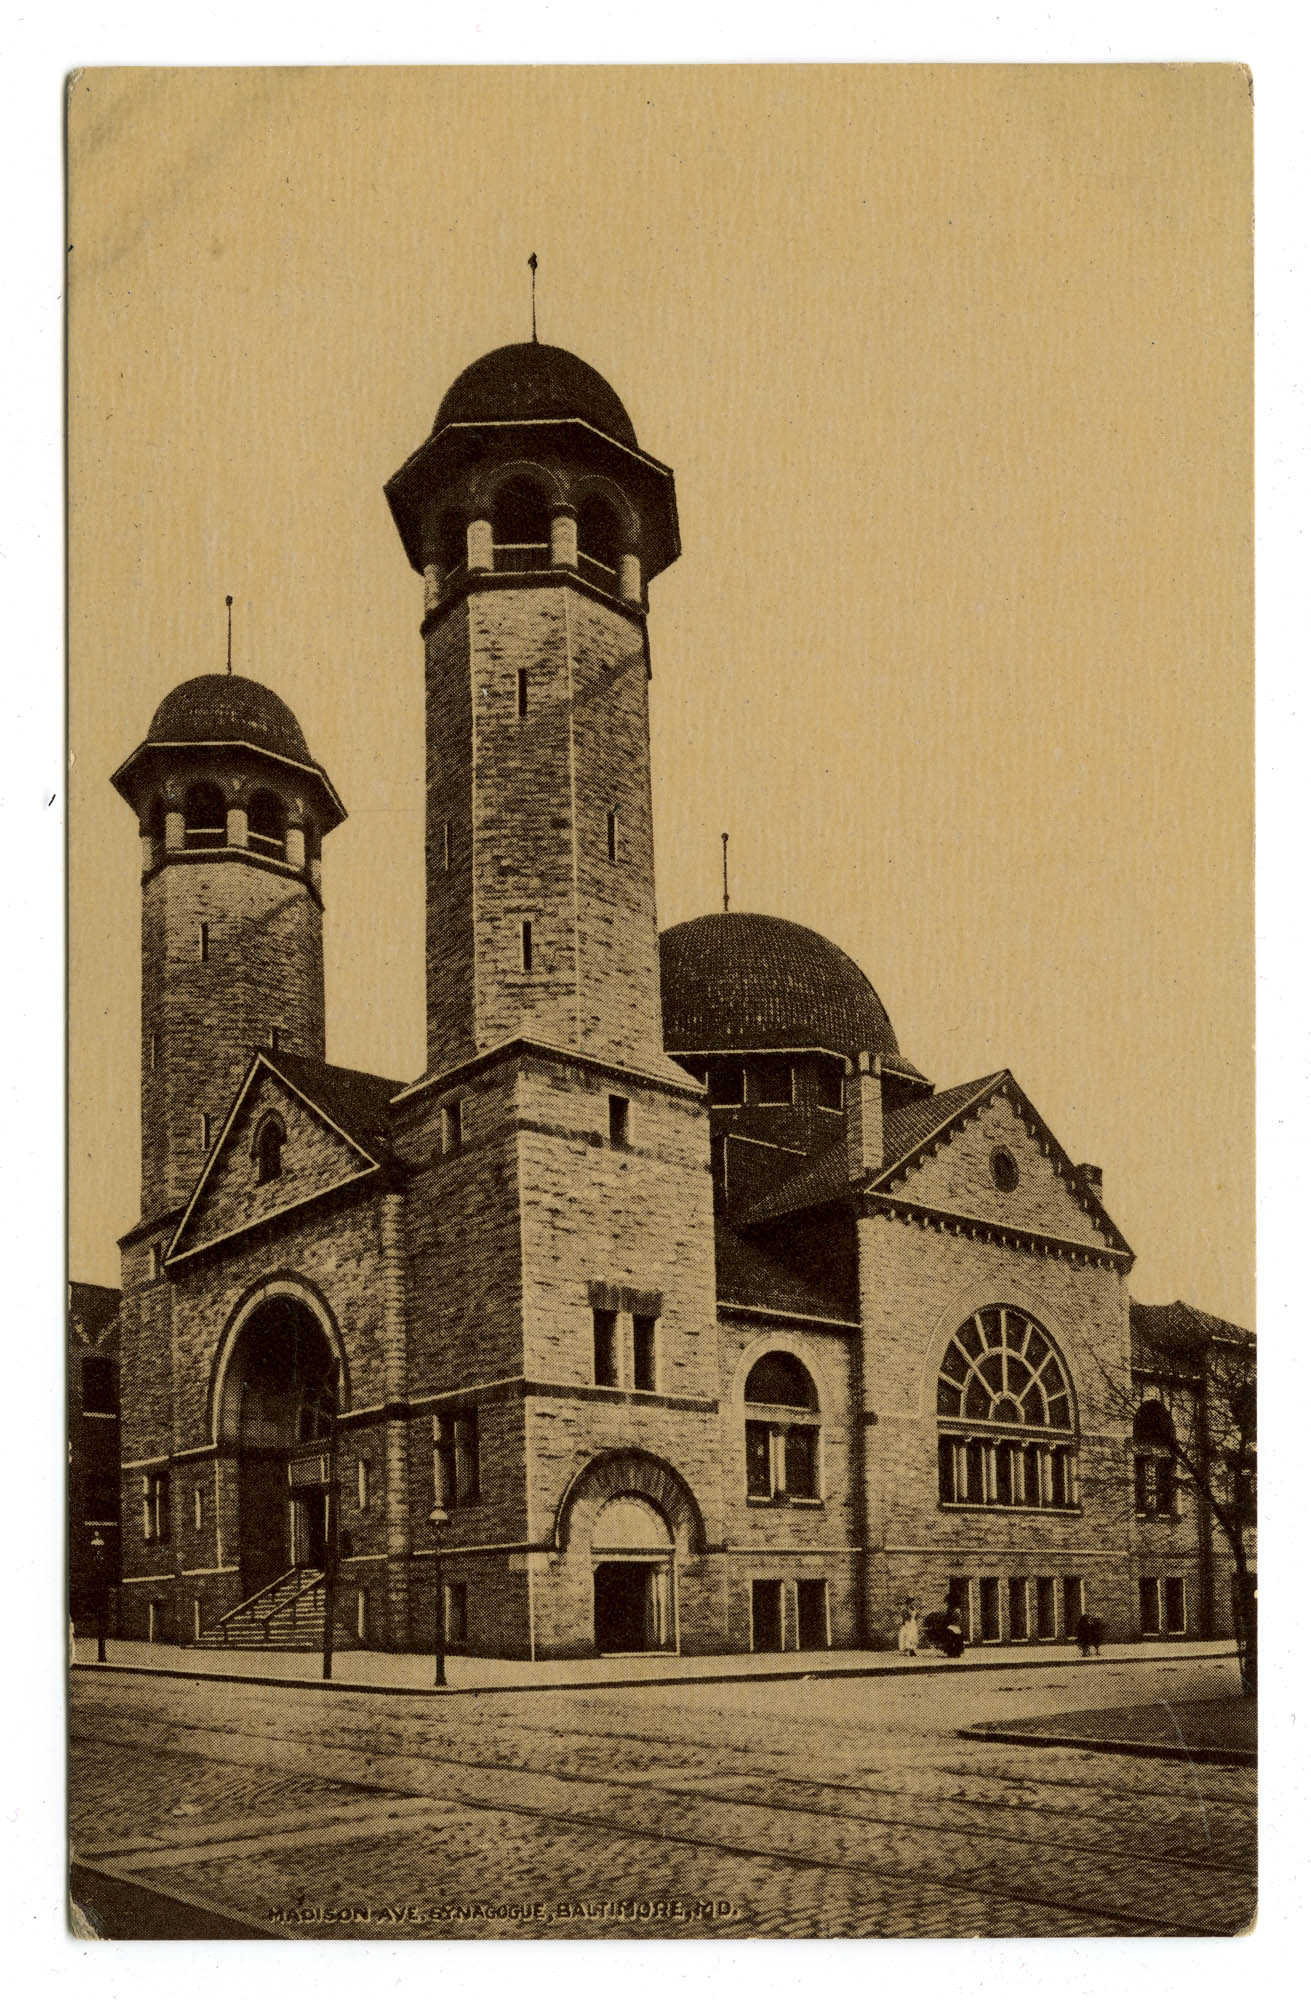 Madison Ave. Synagogue, Baltimore, Md.